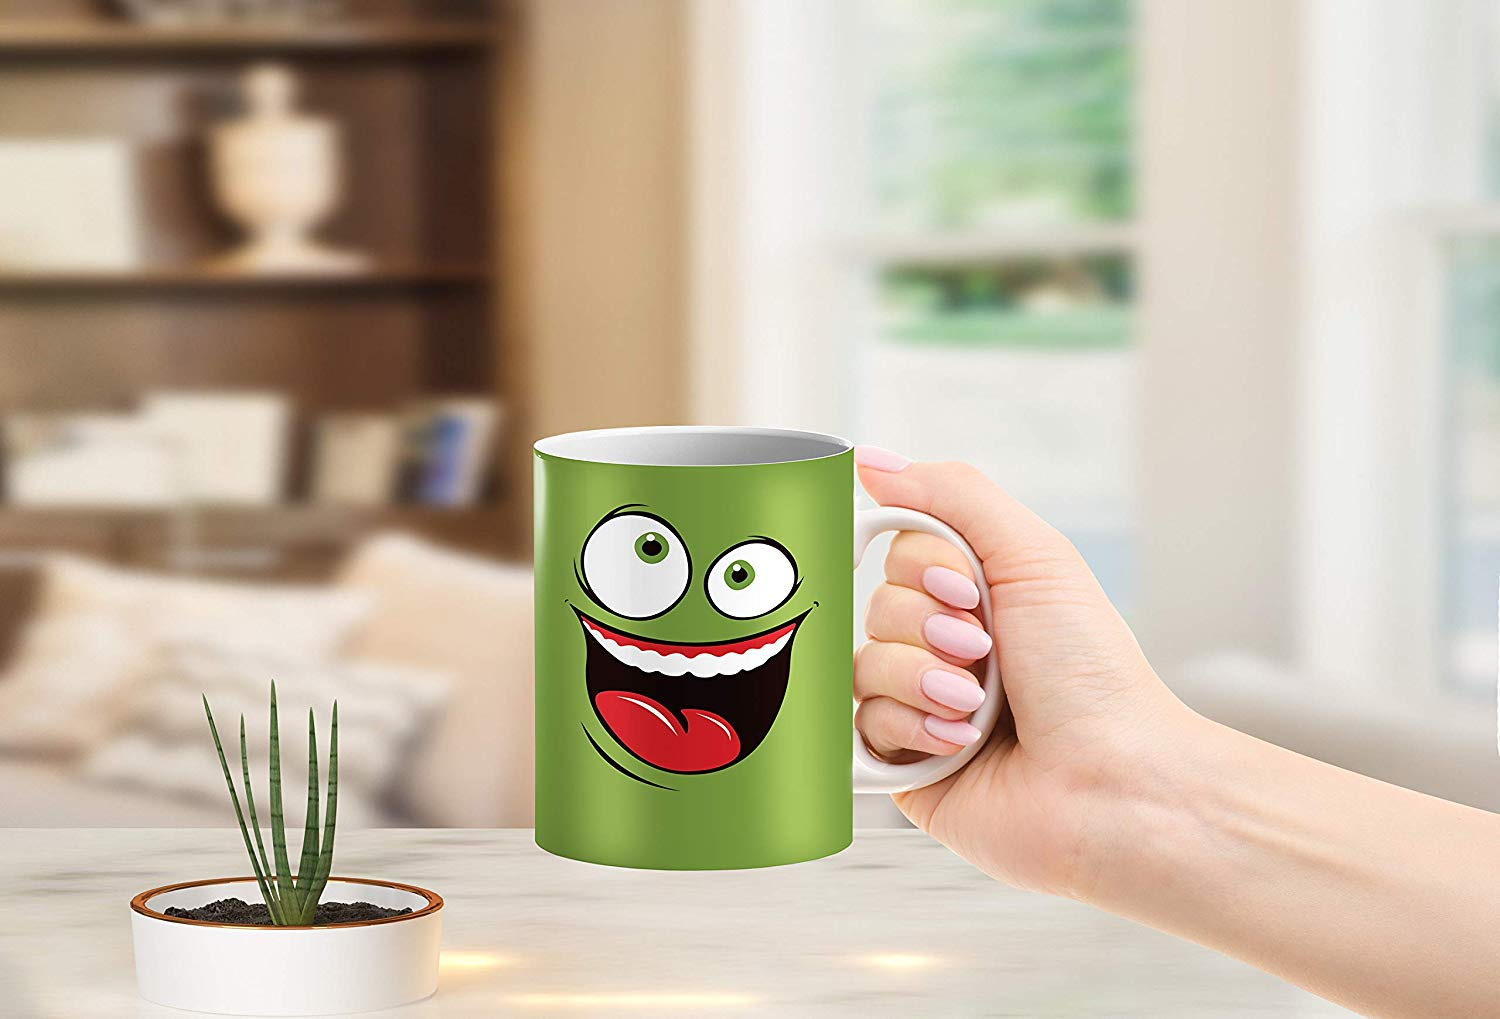 Heat Sensitive Color Changing Coffee Mug Funny Coffee Cup Green Happy Funny Face Design Funny Gift Idea B079FR15QX 6